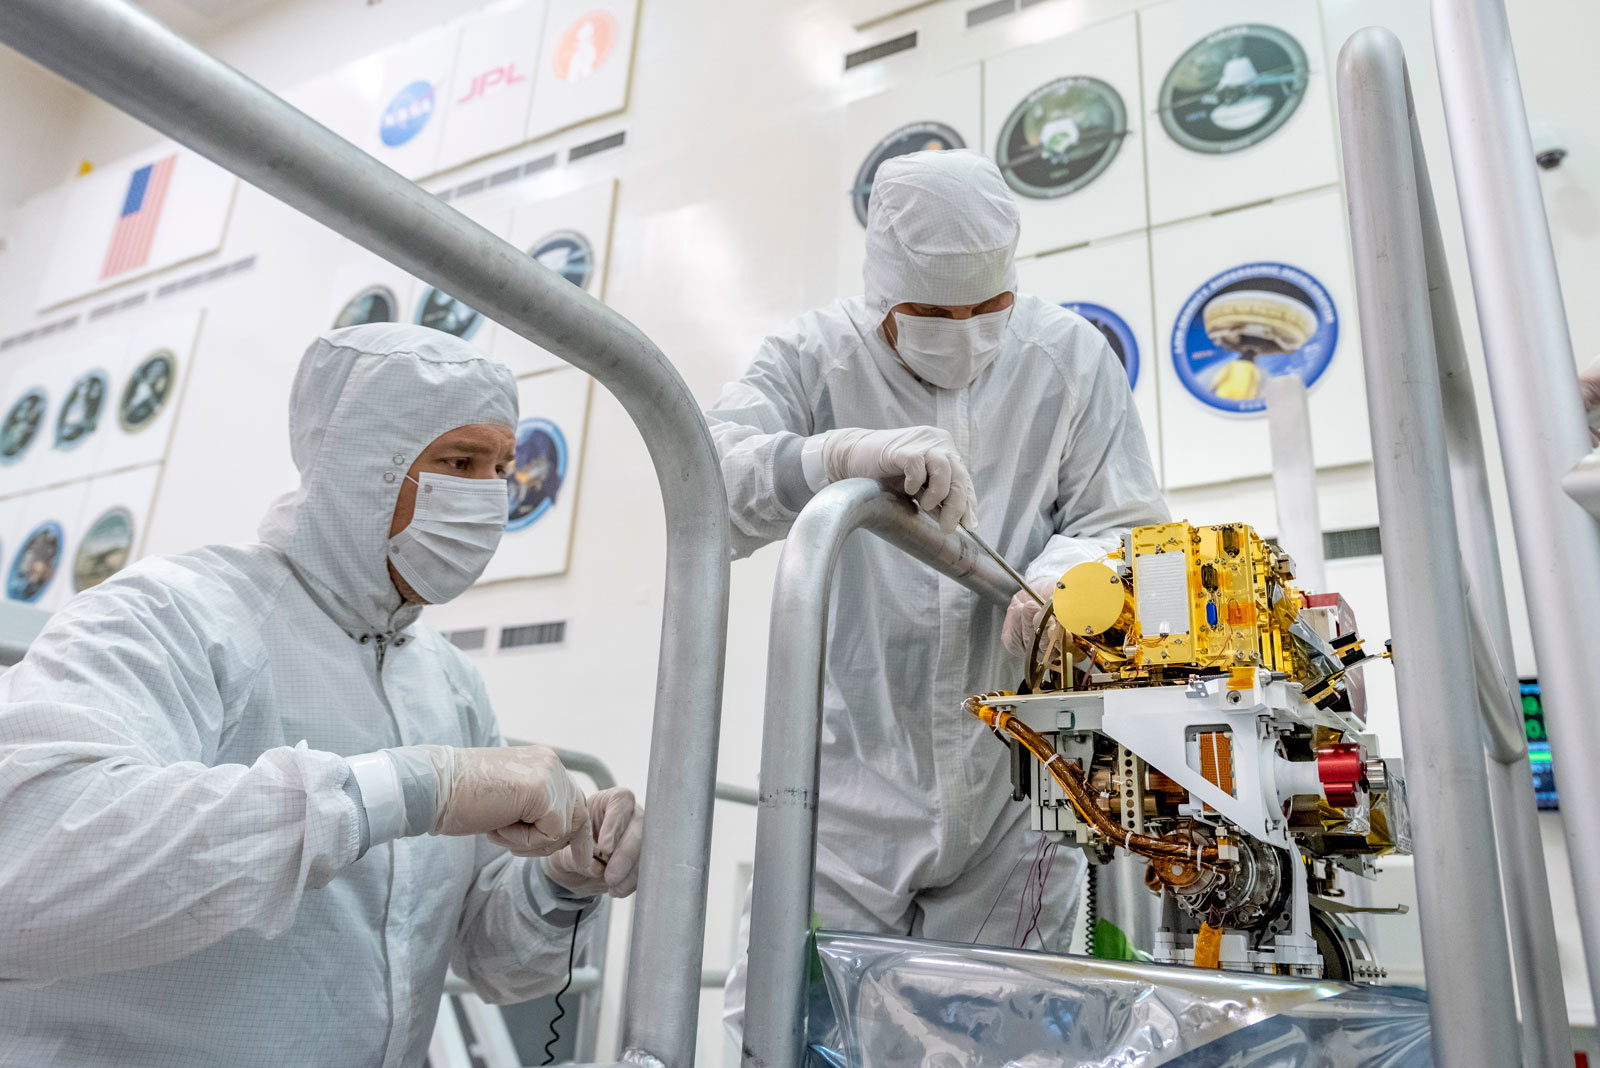 Engineers install the SuperCam instrument on Mars 2020's rover. This image was taken on June 25, 2019, in the Spacecraft Assembly Facility at NASA's Jet Propulsion Laboratory, Pasadena, California.